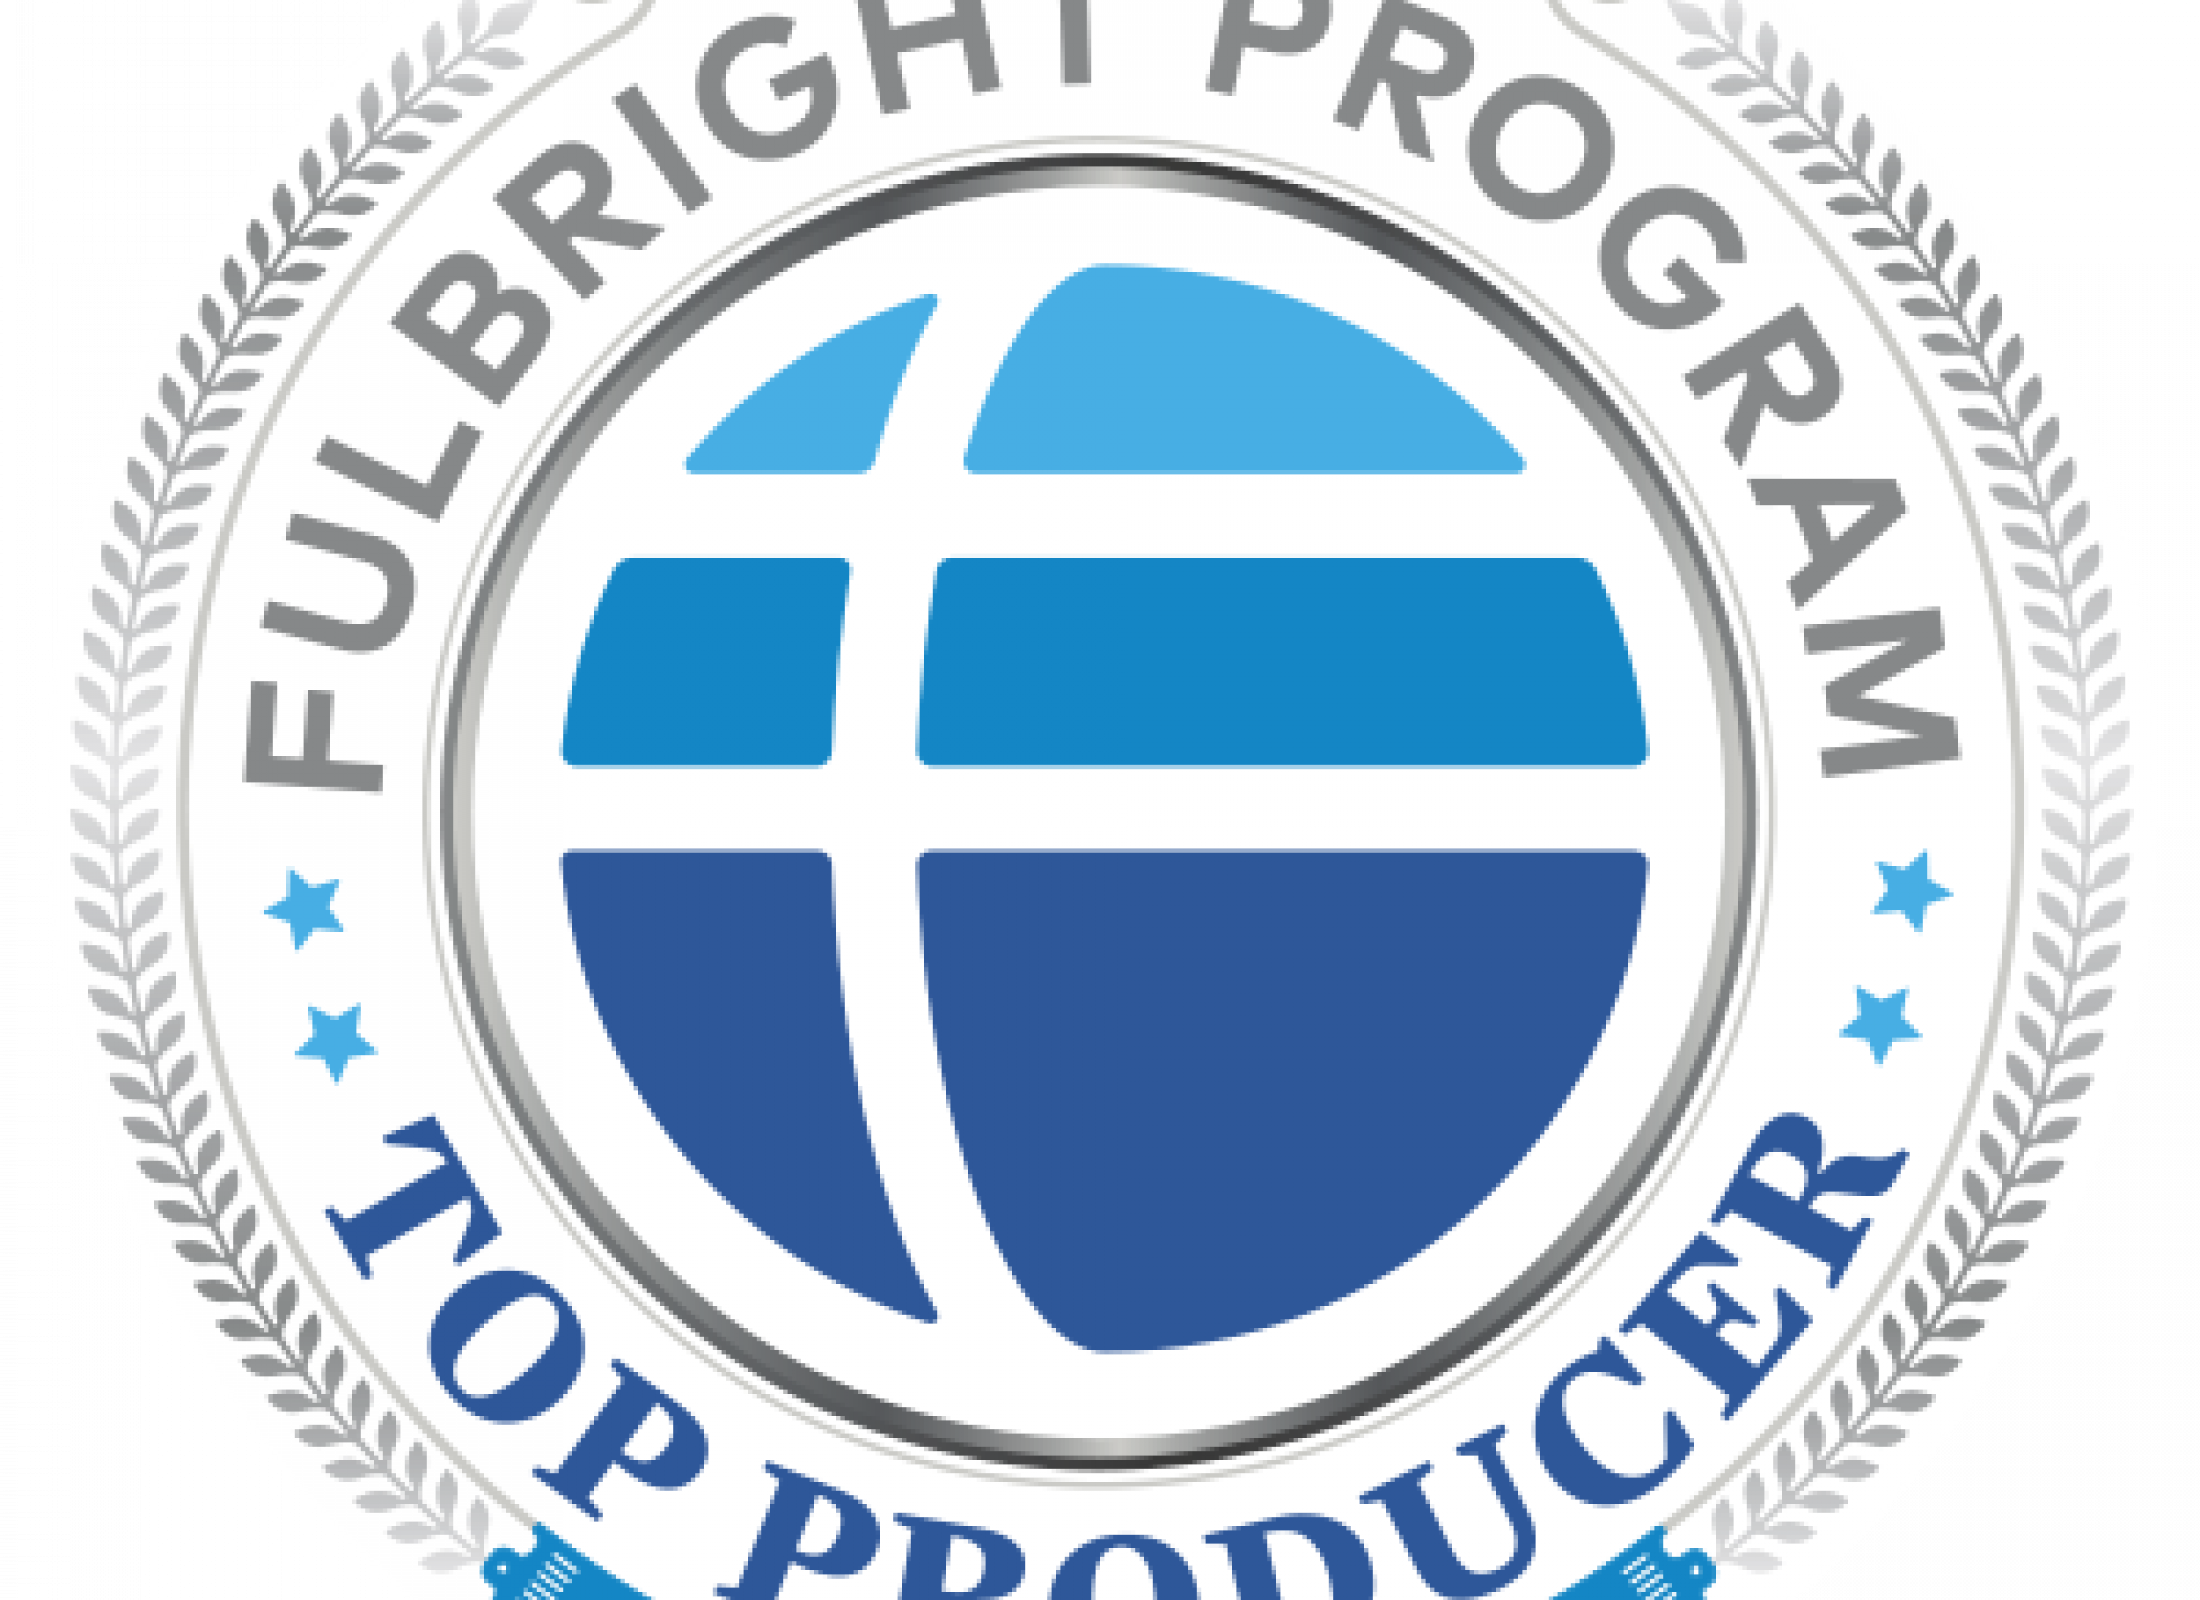 Fulbright seal for top producing institutions